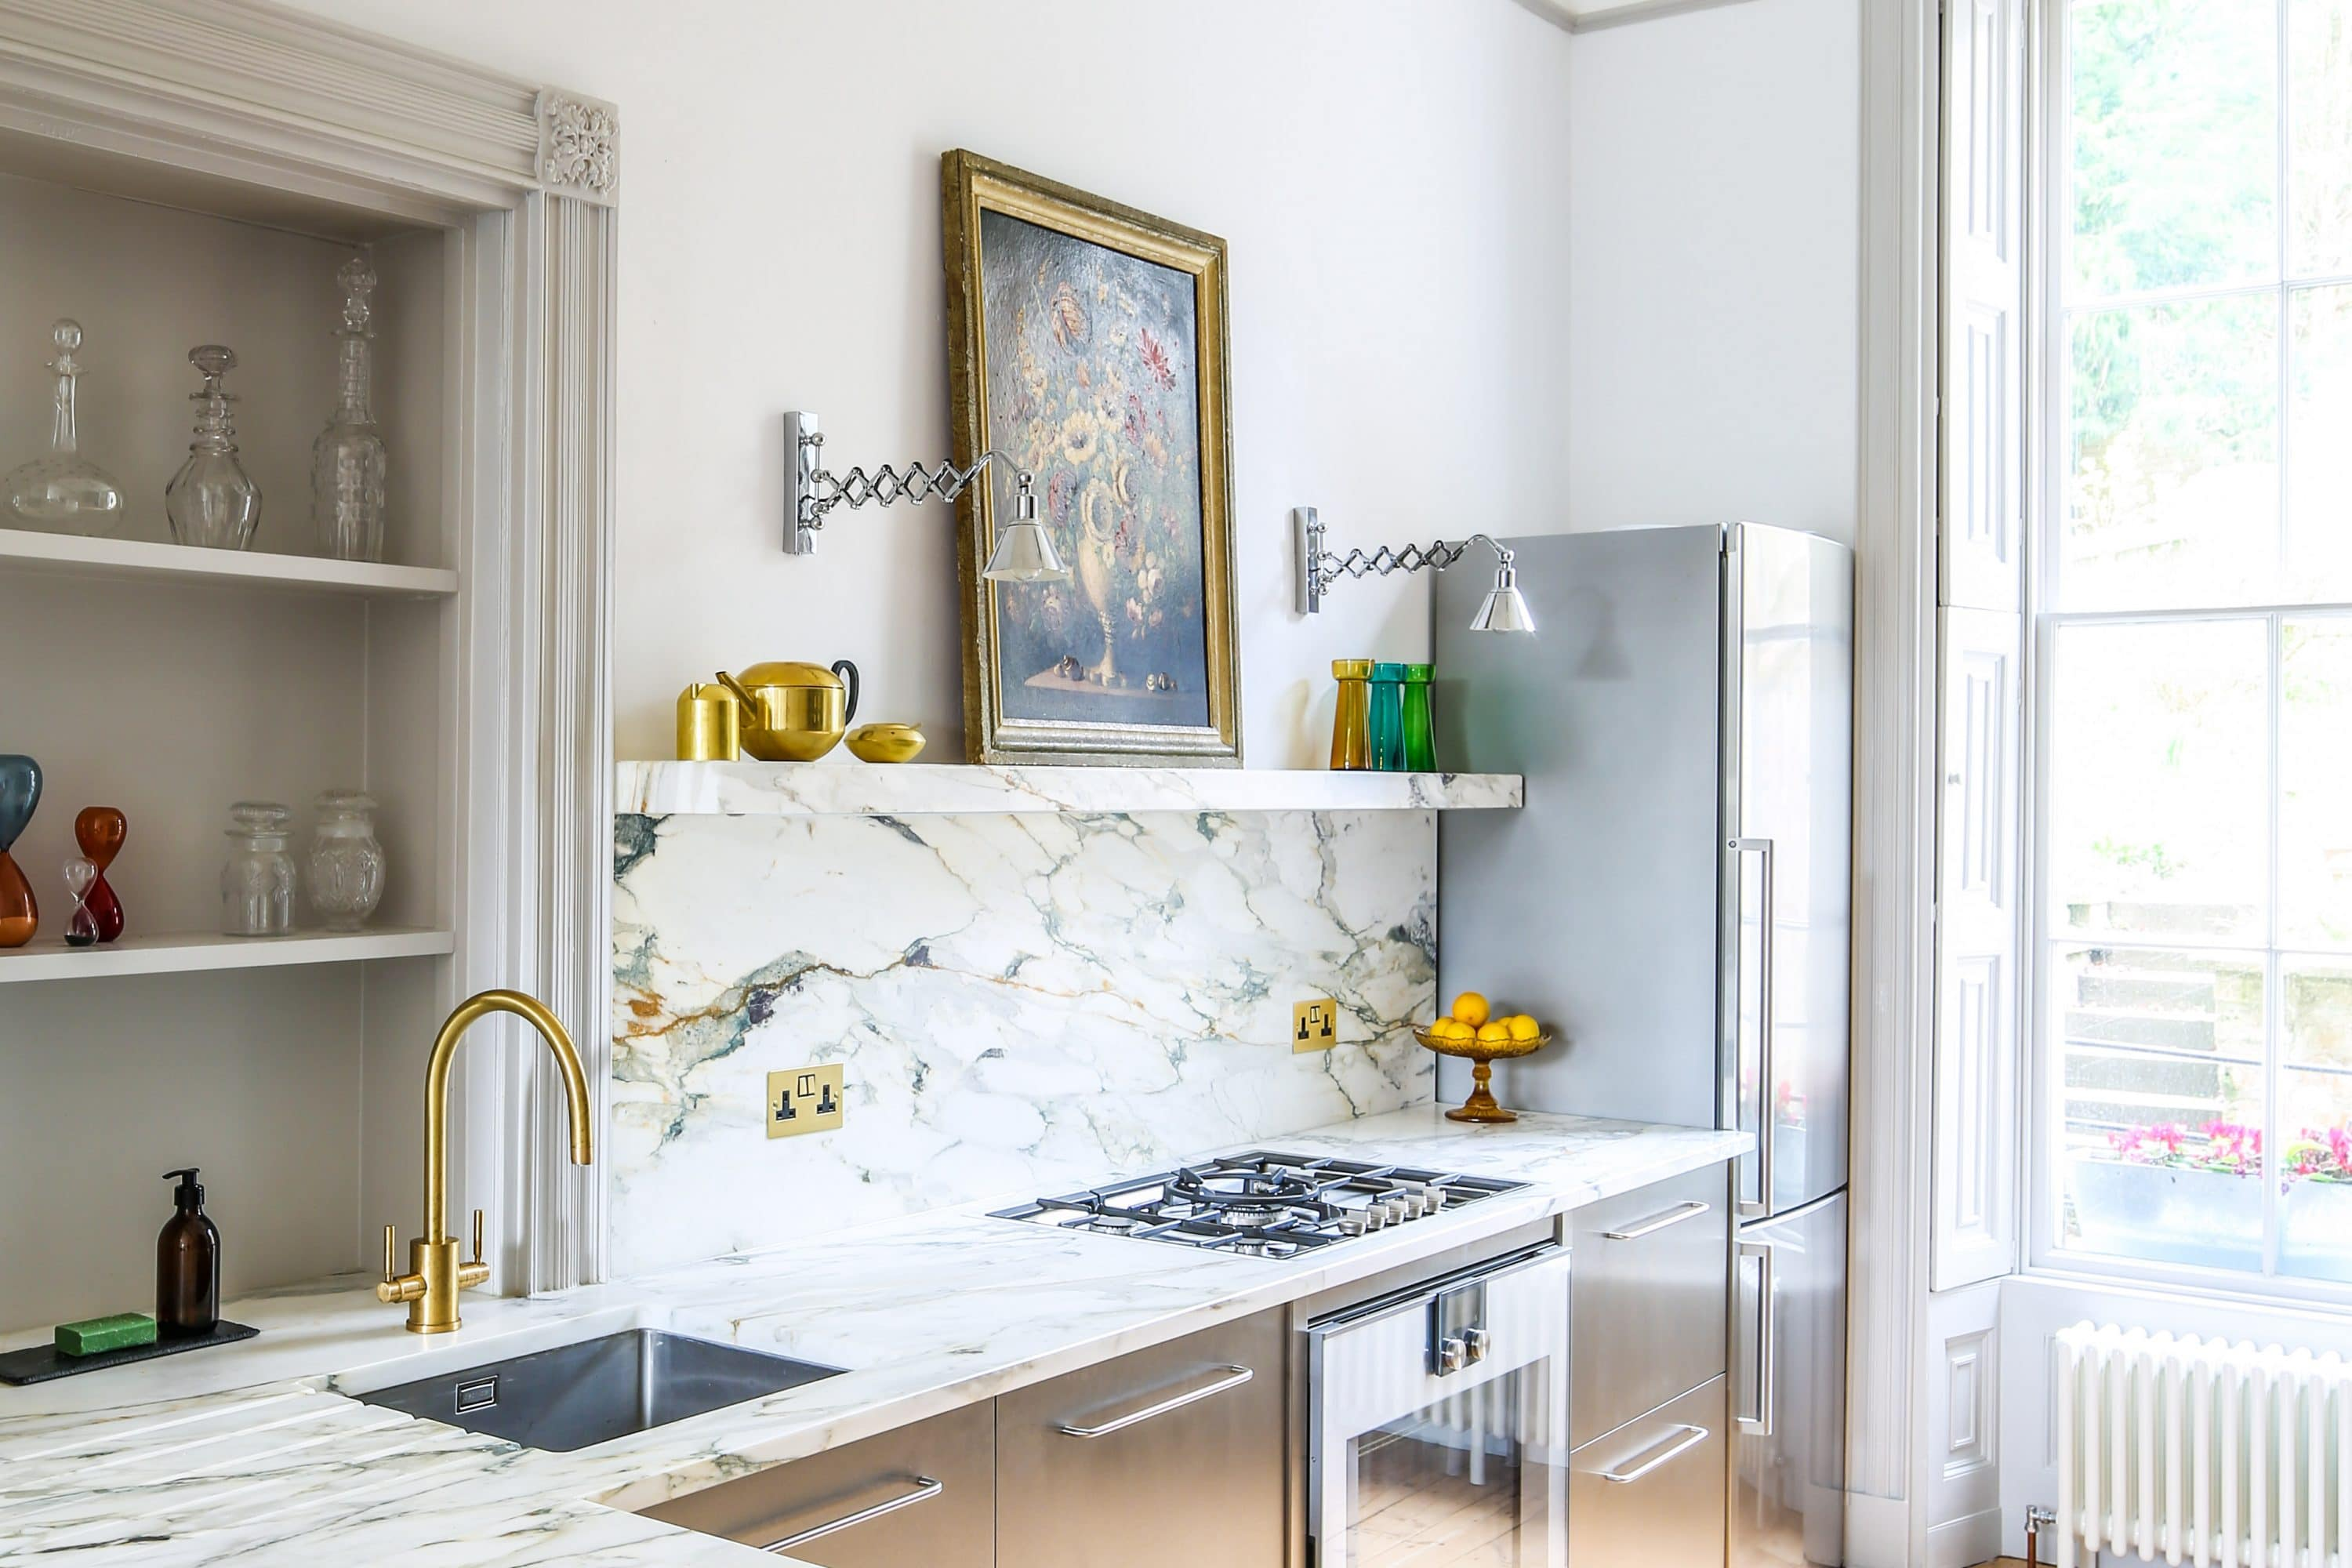 Foulser - The Steel And Marble Townhouse Kitchen - Sustainable Kitchens